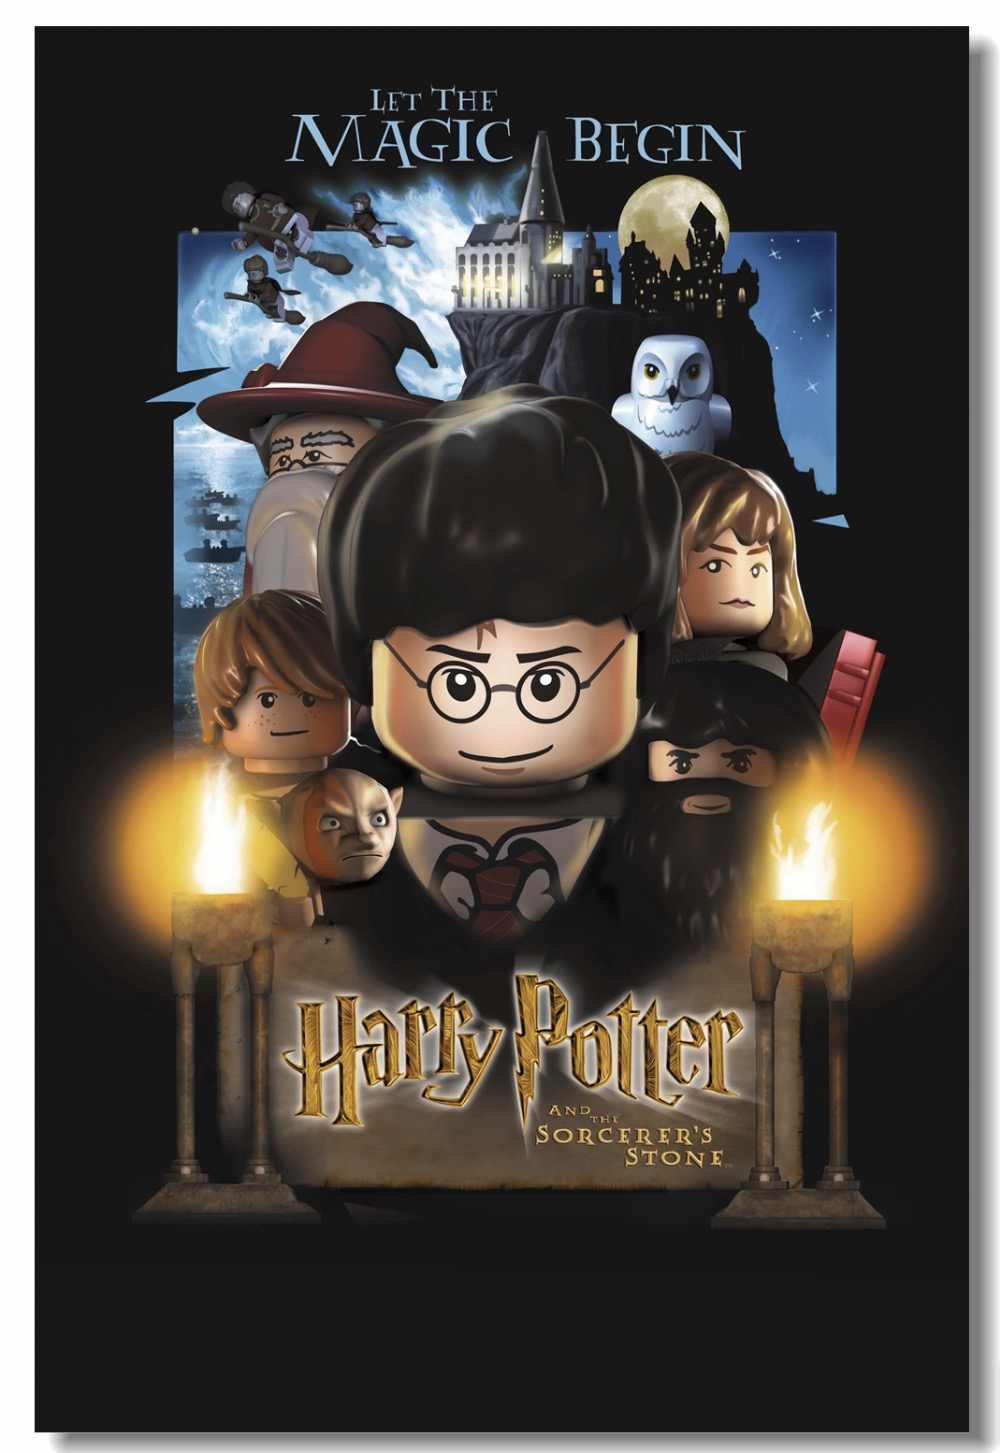 Custom Canvas Wall Mural Harry Potter Lego Poster Hogwarts - Harry Potter And The Philosopher's Stone Lego , HD Wallpaper & Backgrounds